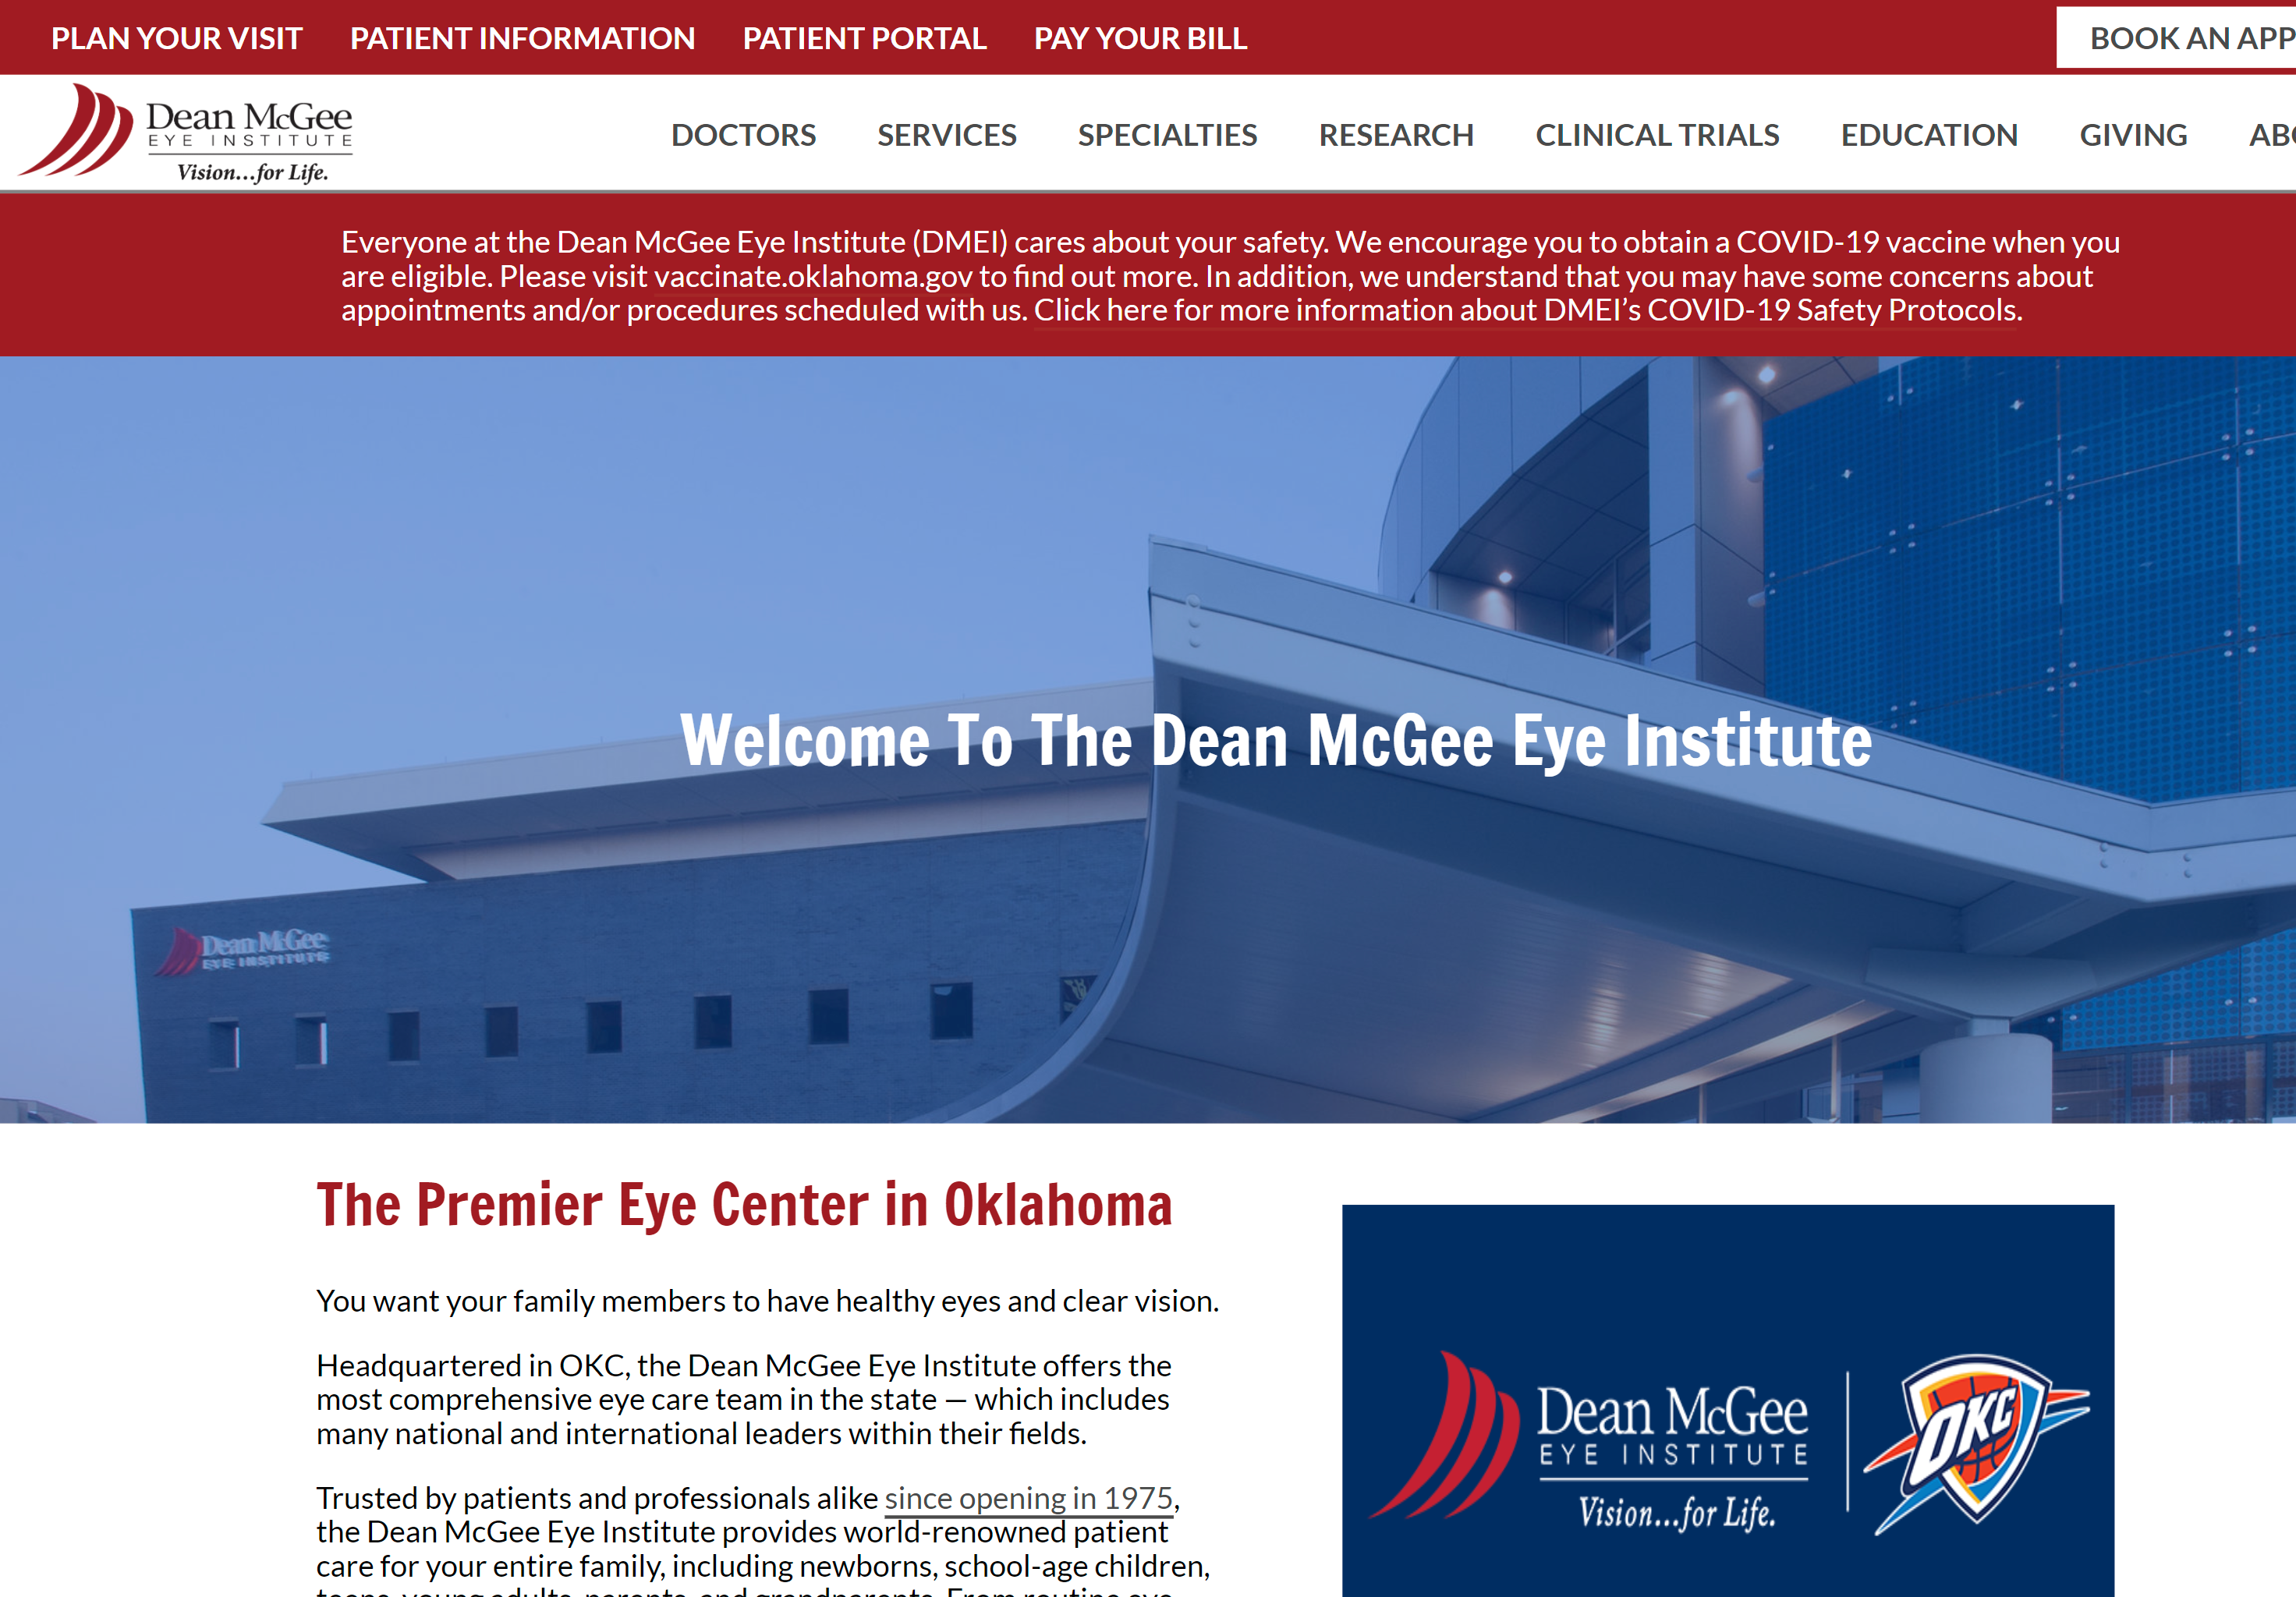 Dean McGee Eye Institute